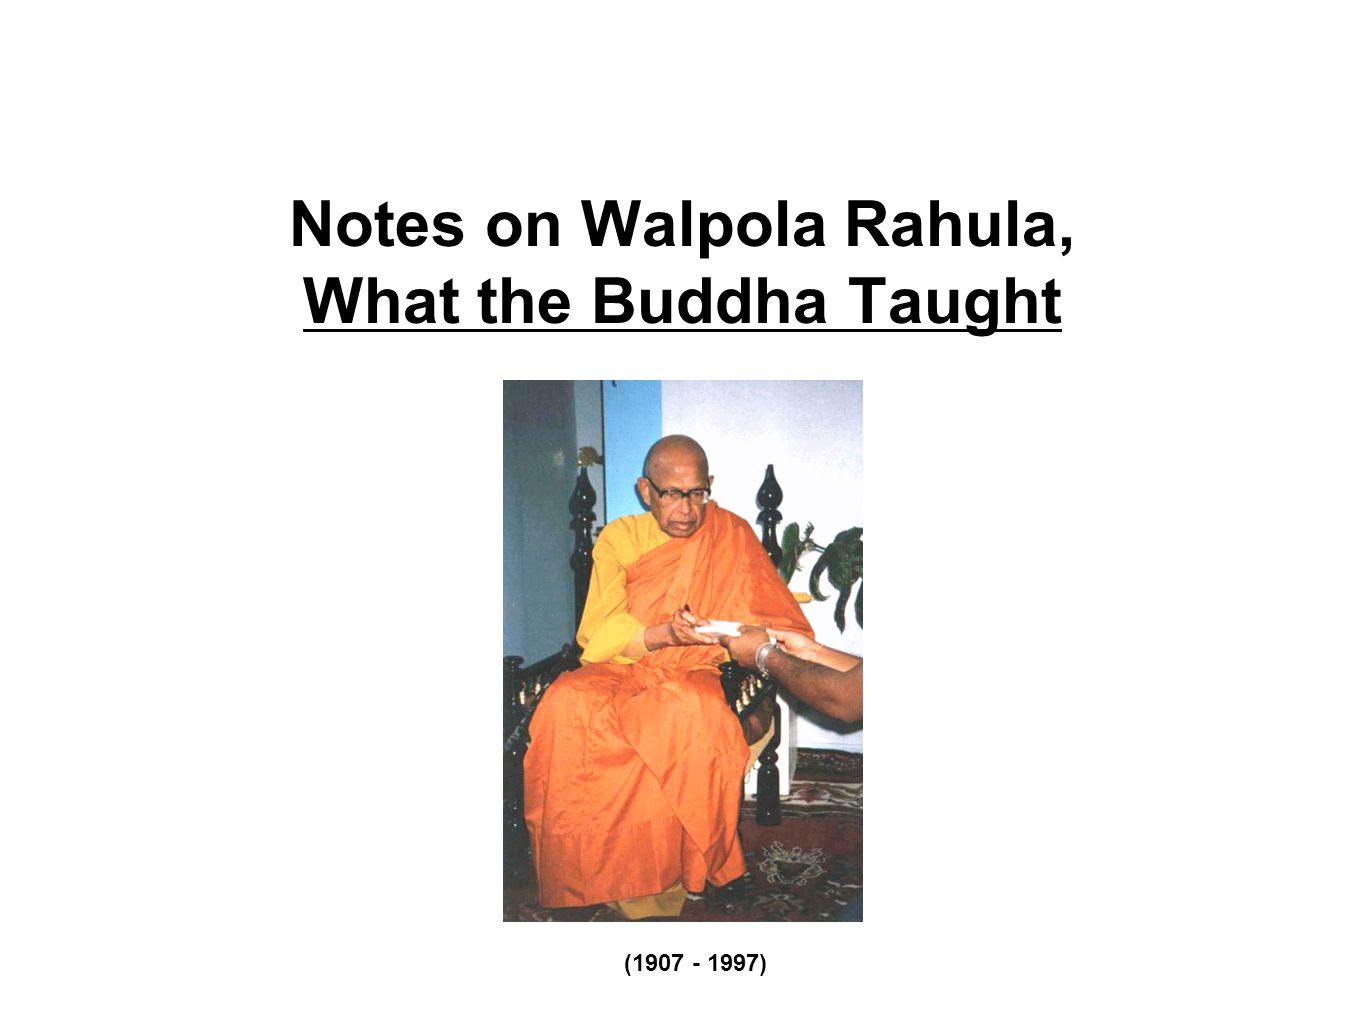 The Buddha on Freedom and Determinism According to the Buddha's concept of conditioned genesis (what Thich Nhat Hanh calls interbeing ), nothing exists as a separate individual; everything exists in relation to others, interdependently.